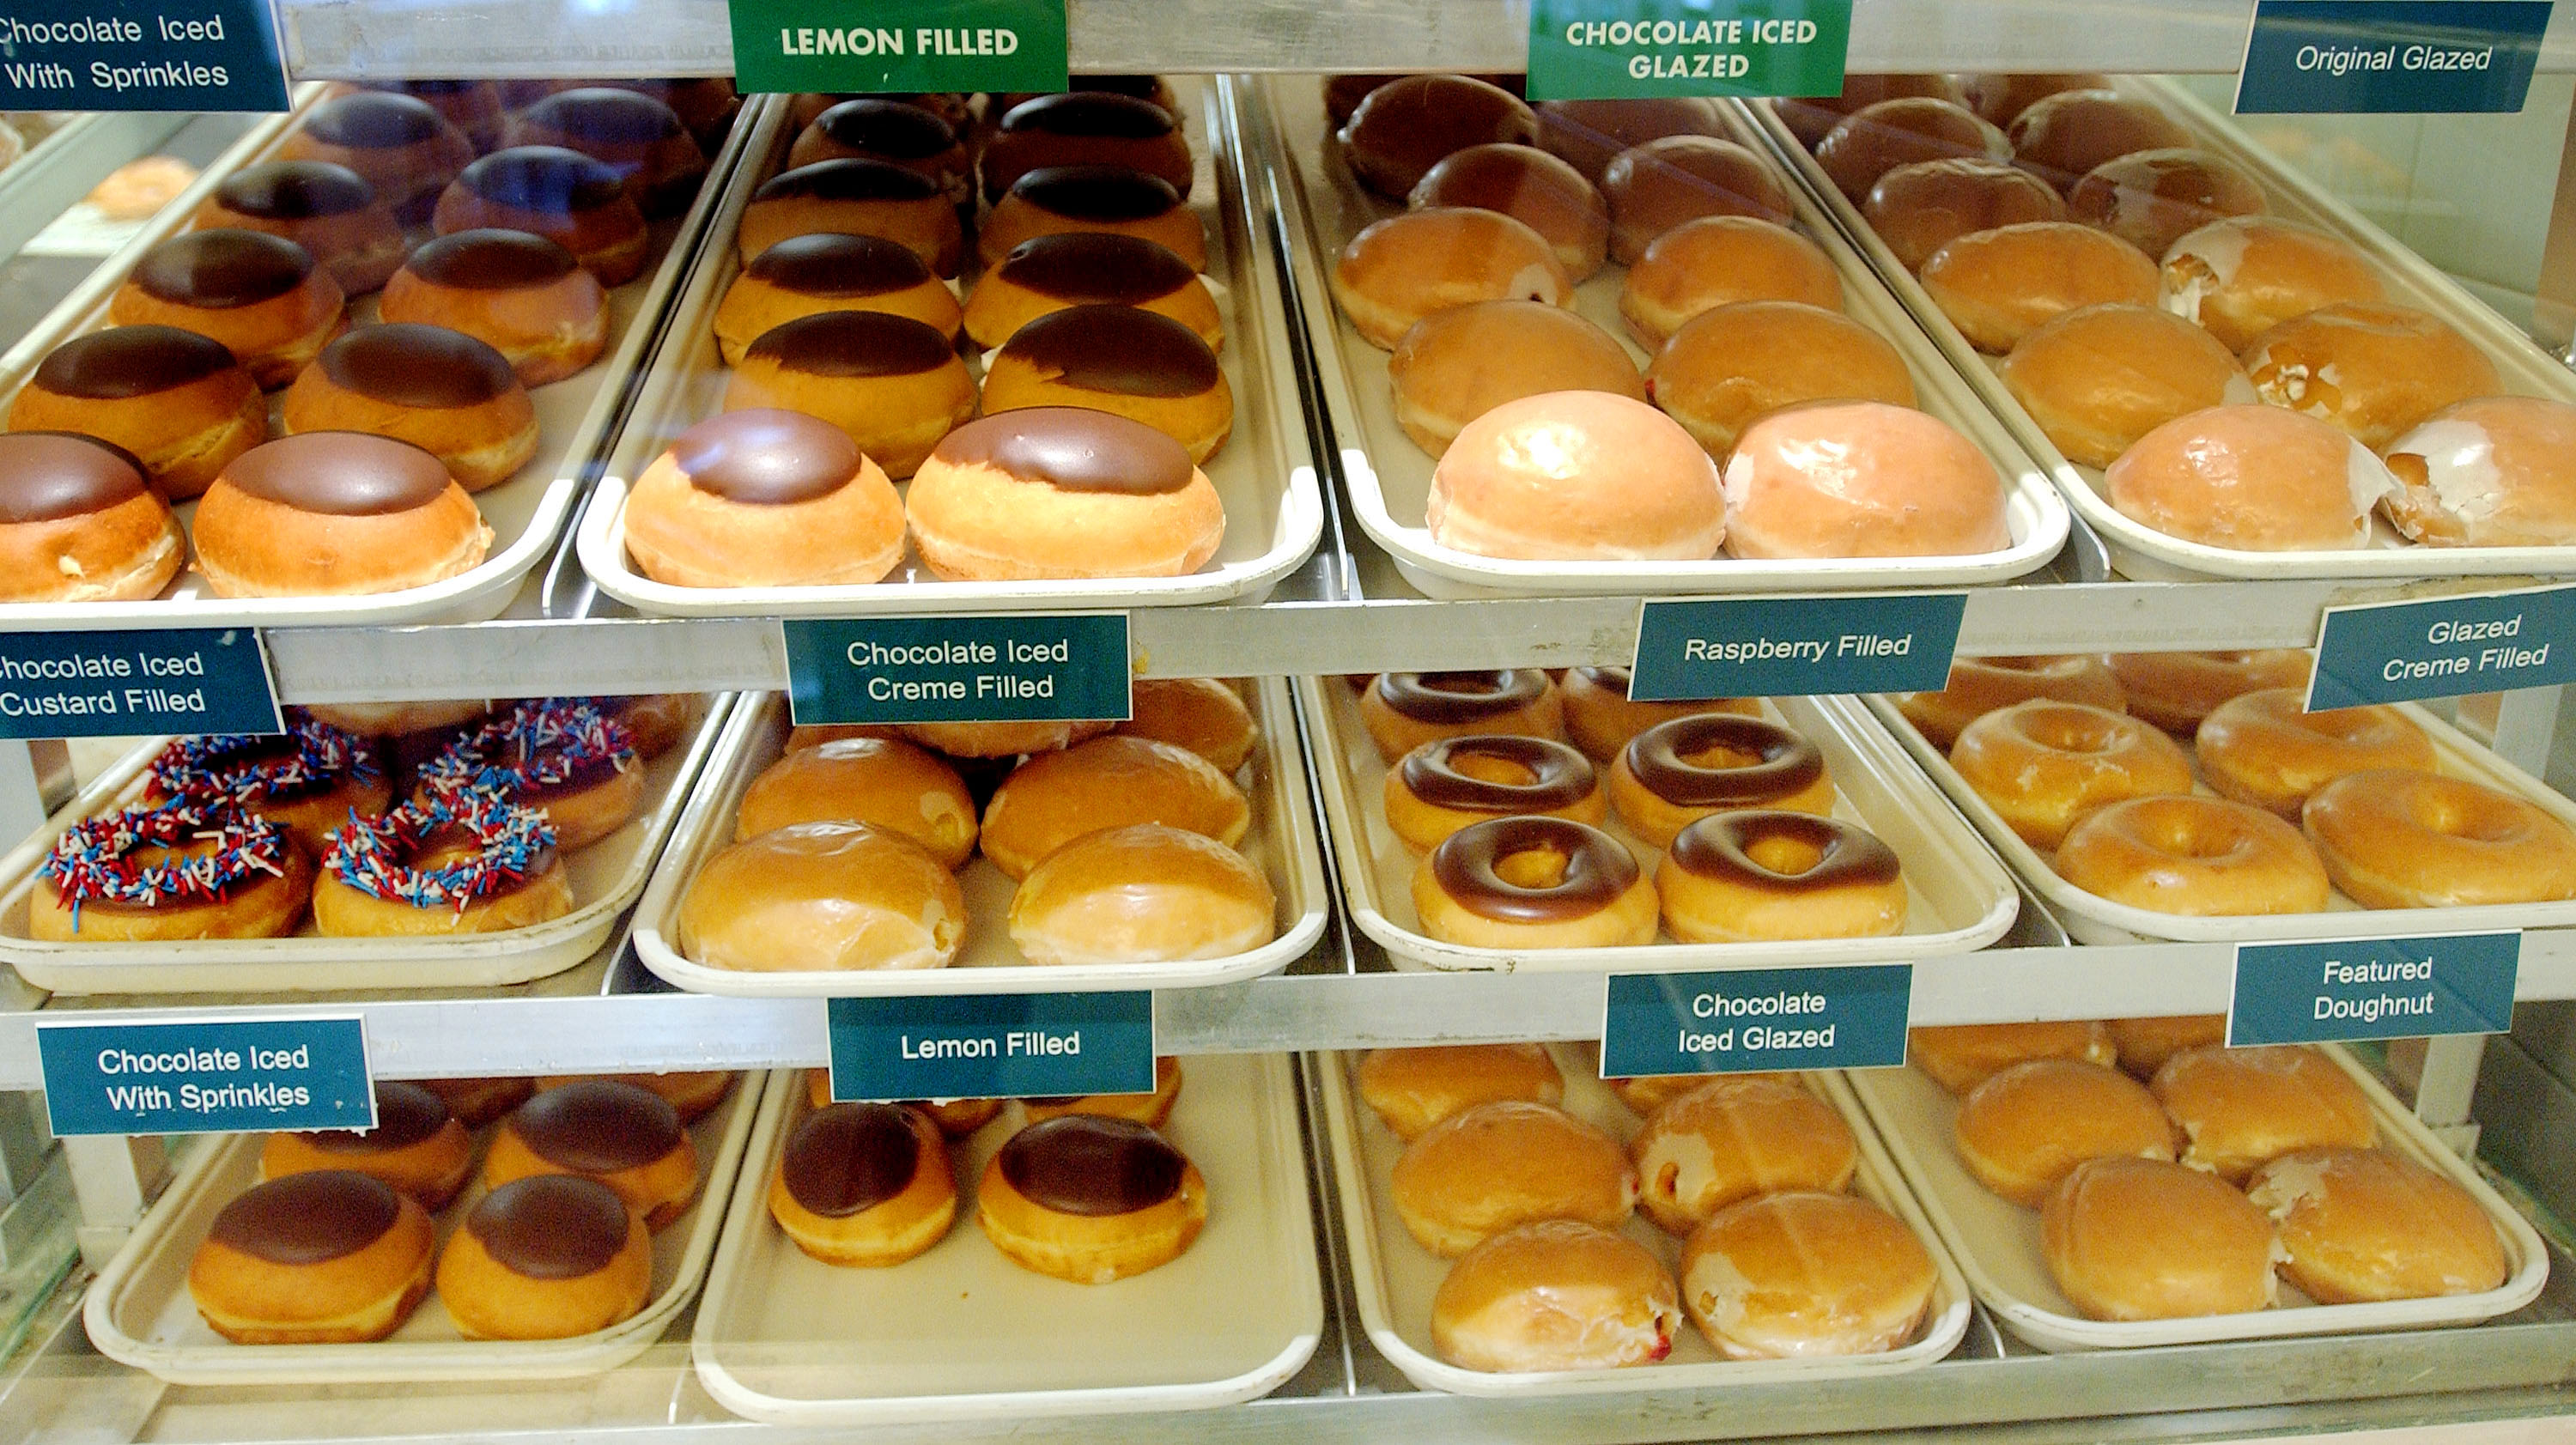 krispy kreme doughnuts inc case solution For generations, krispy kreme has been serving delicious doughnuts and coffee stop by for an original glazed doughnut or other variety paired with a hot or iced coffee.